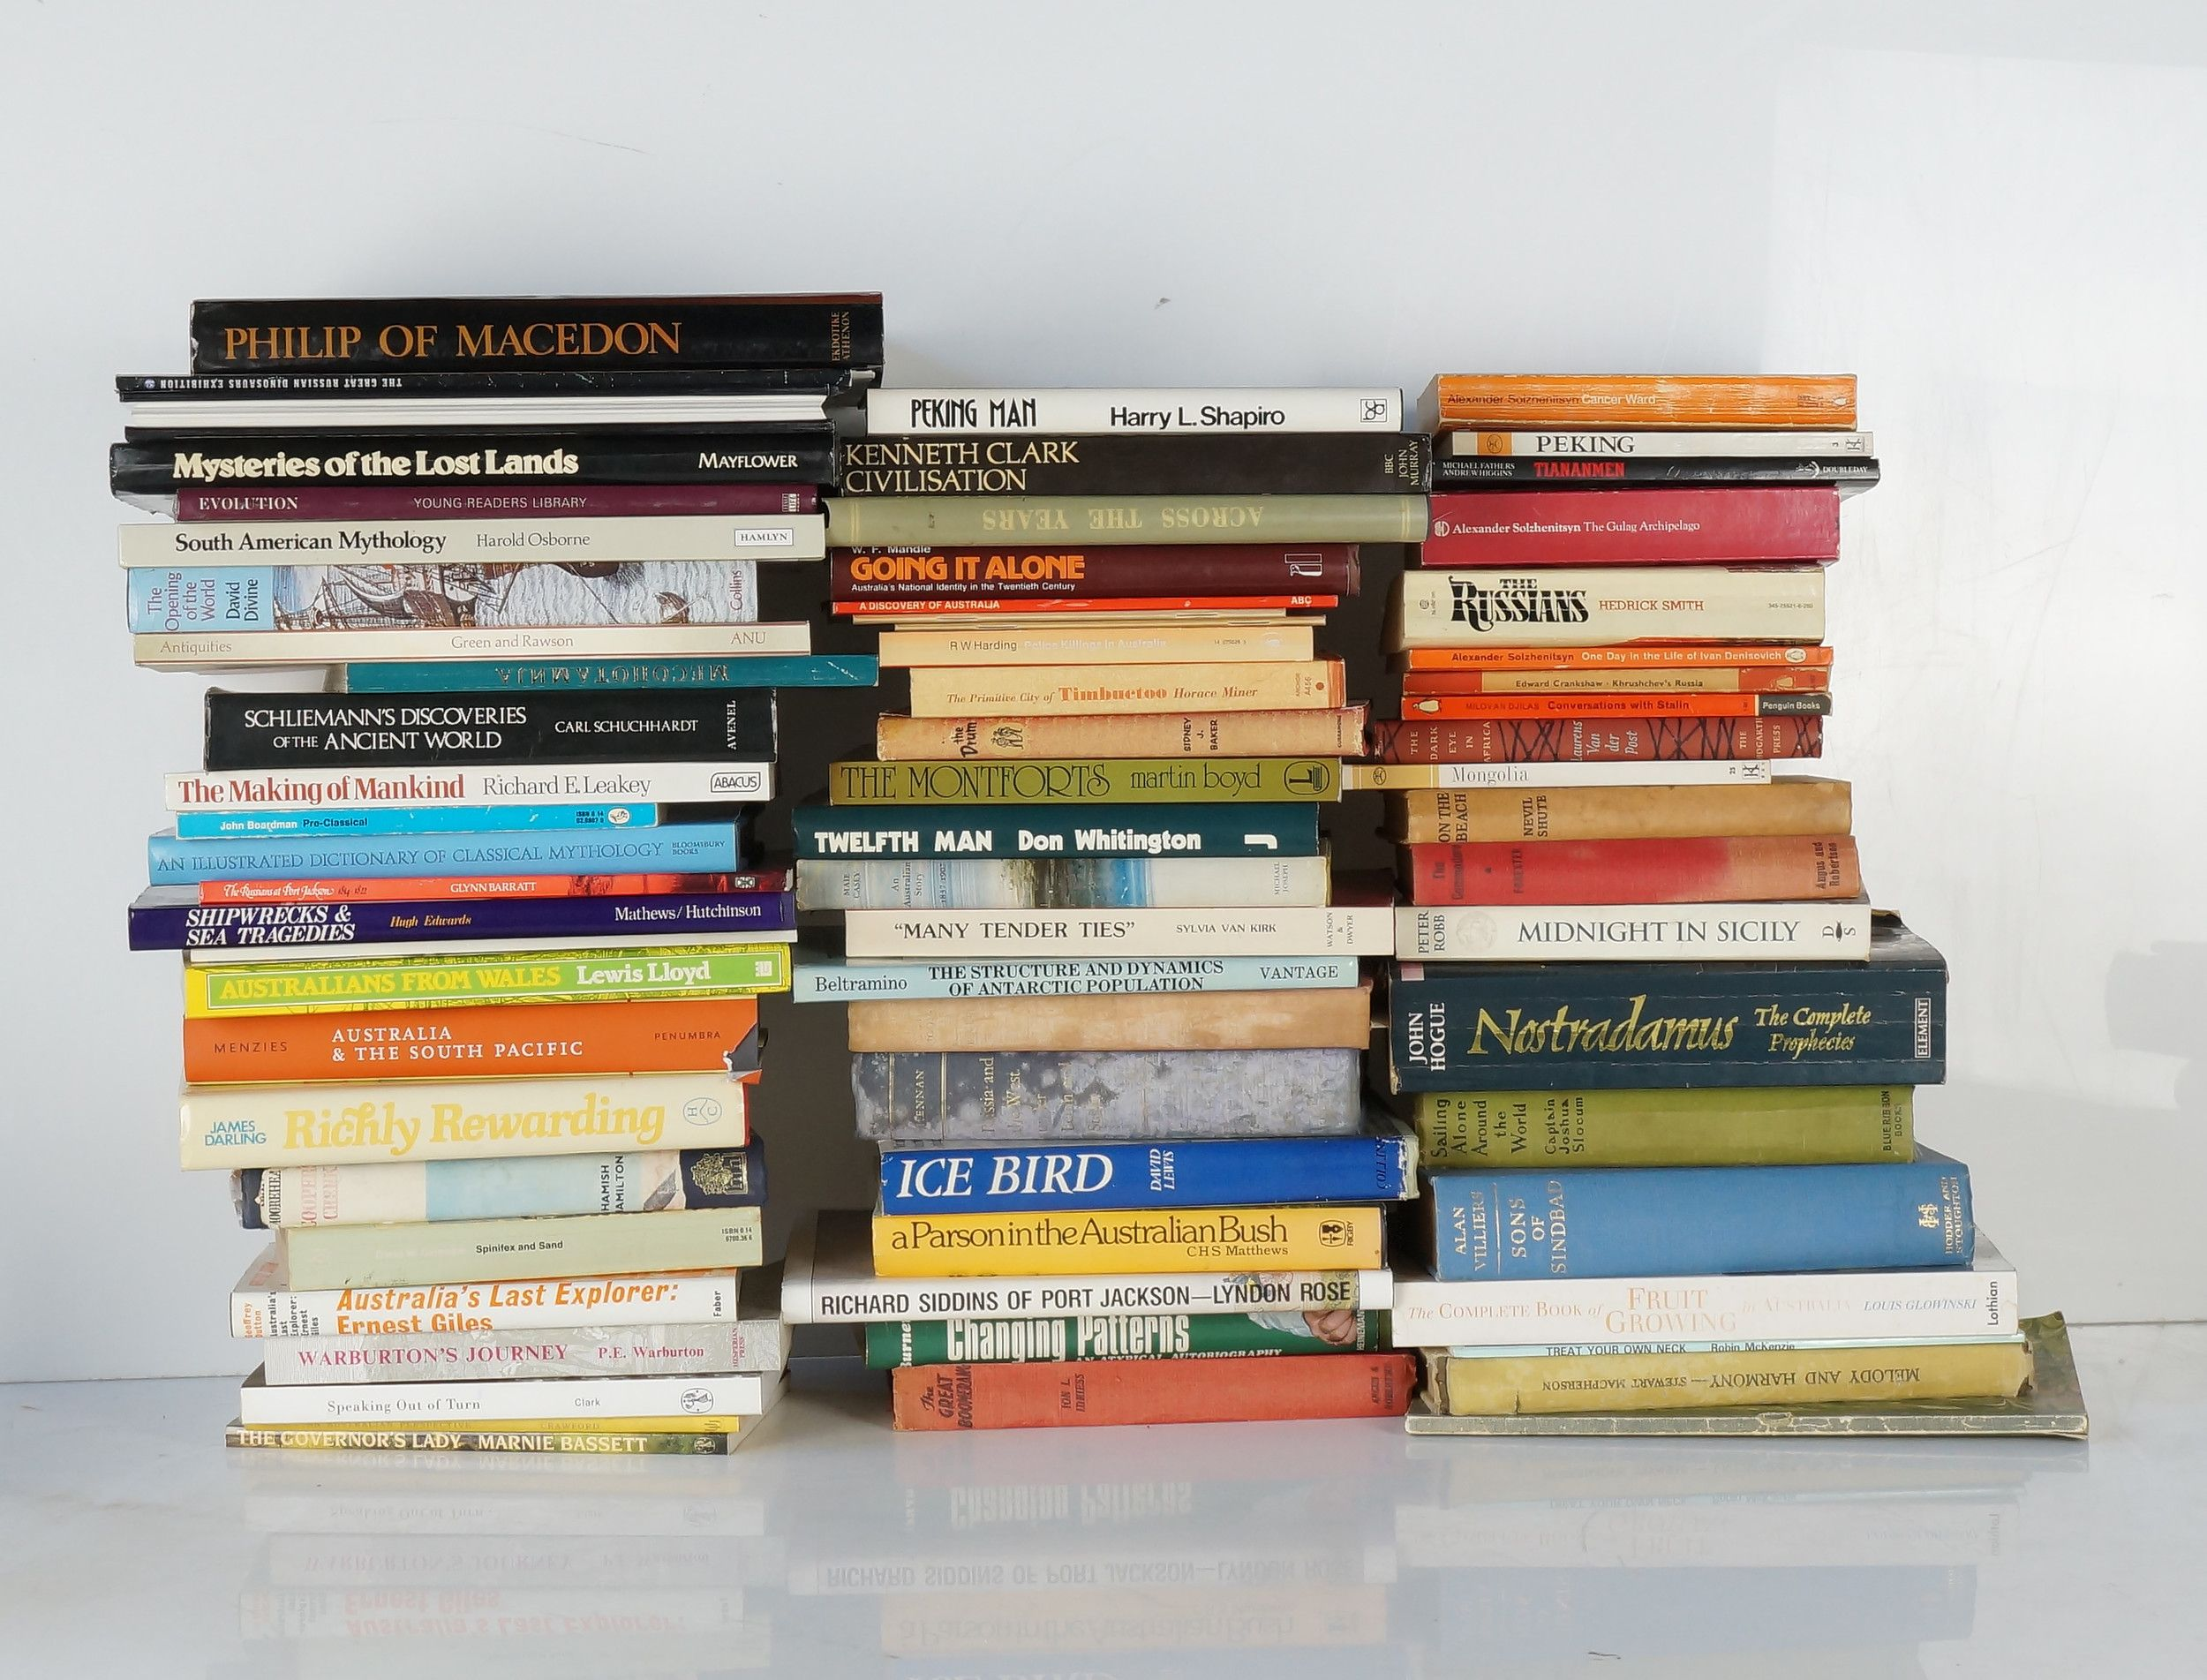 Very Large Group of Books on Aboriginal History, Philosophy, Diplomacy,  Poetry, Maps, Inlcuding Damascus to Palestra and Egyptian Myths and Legends